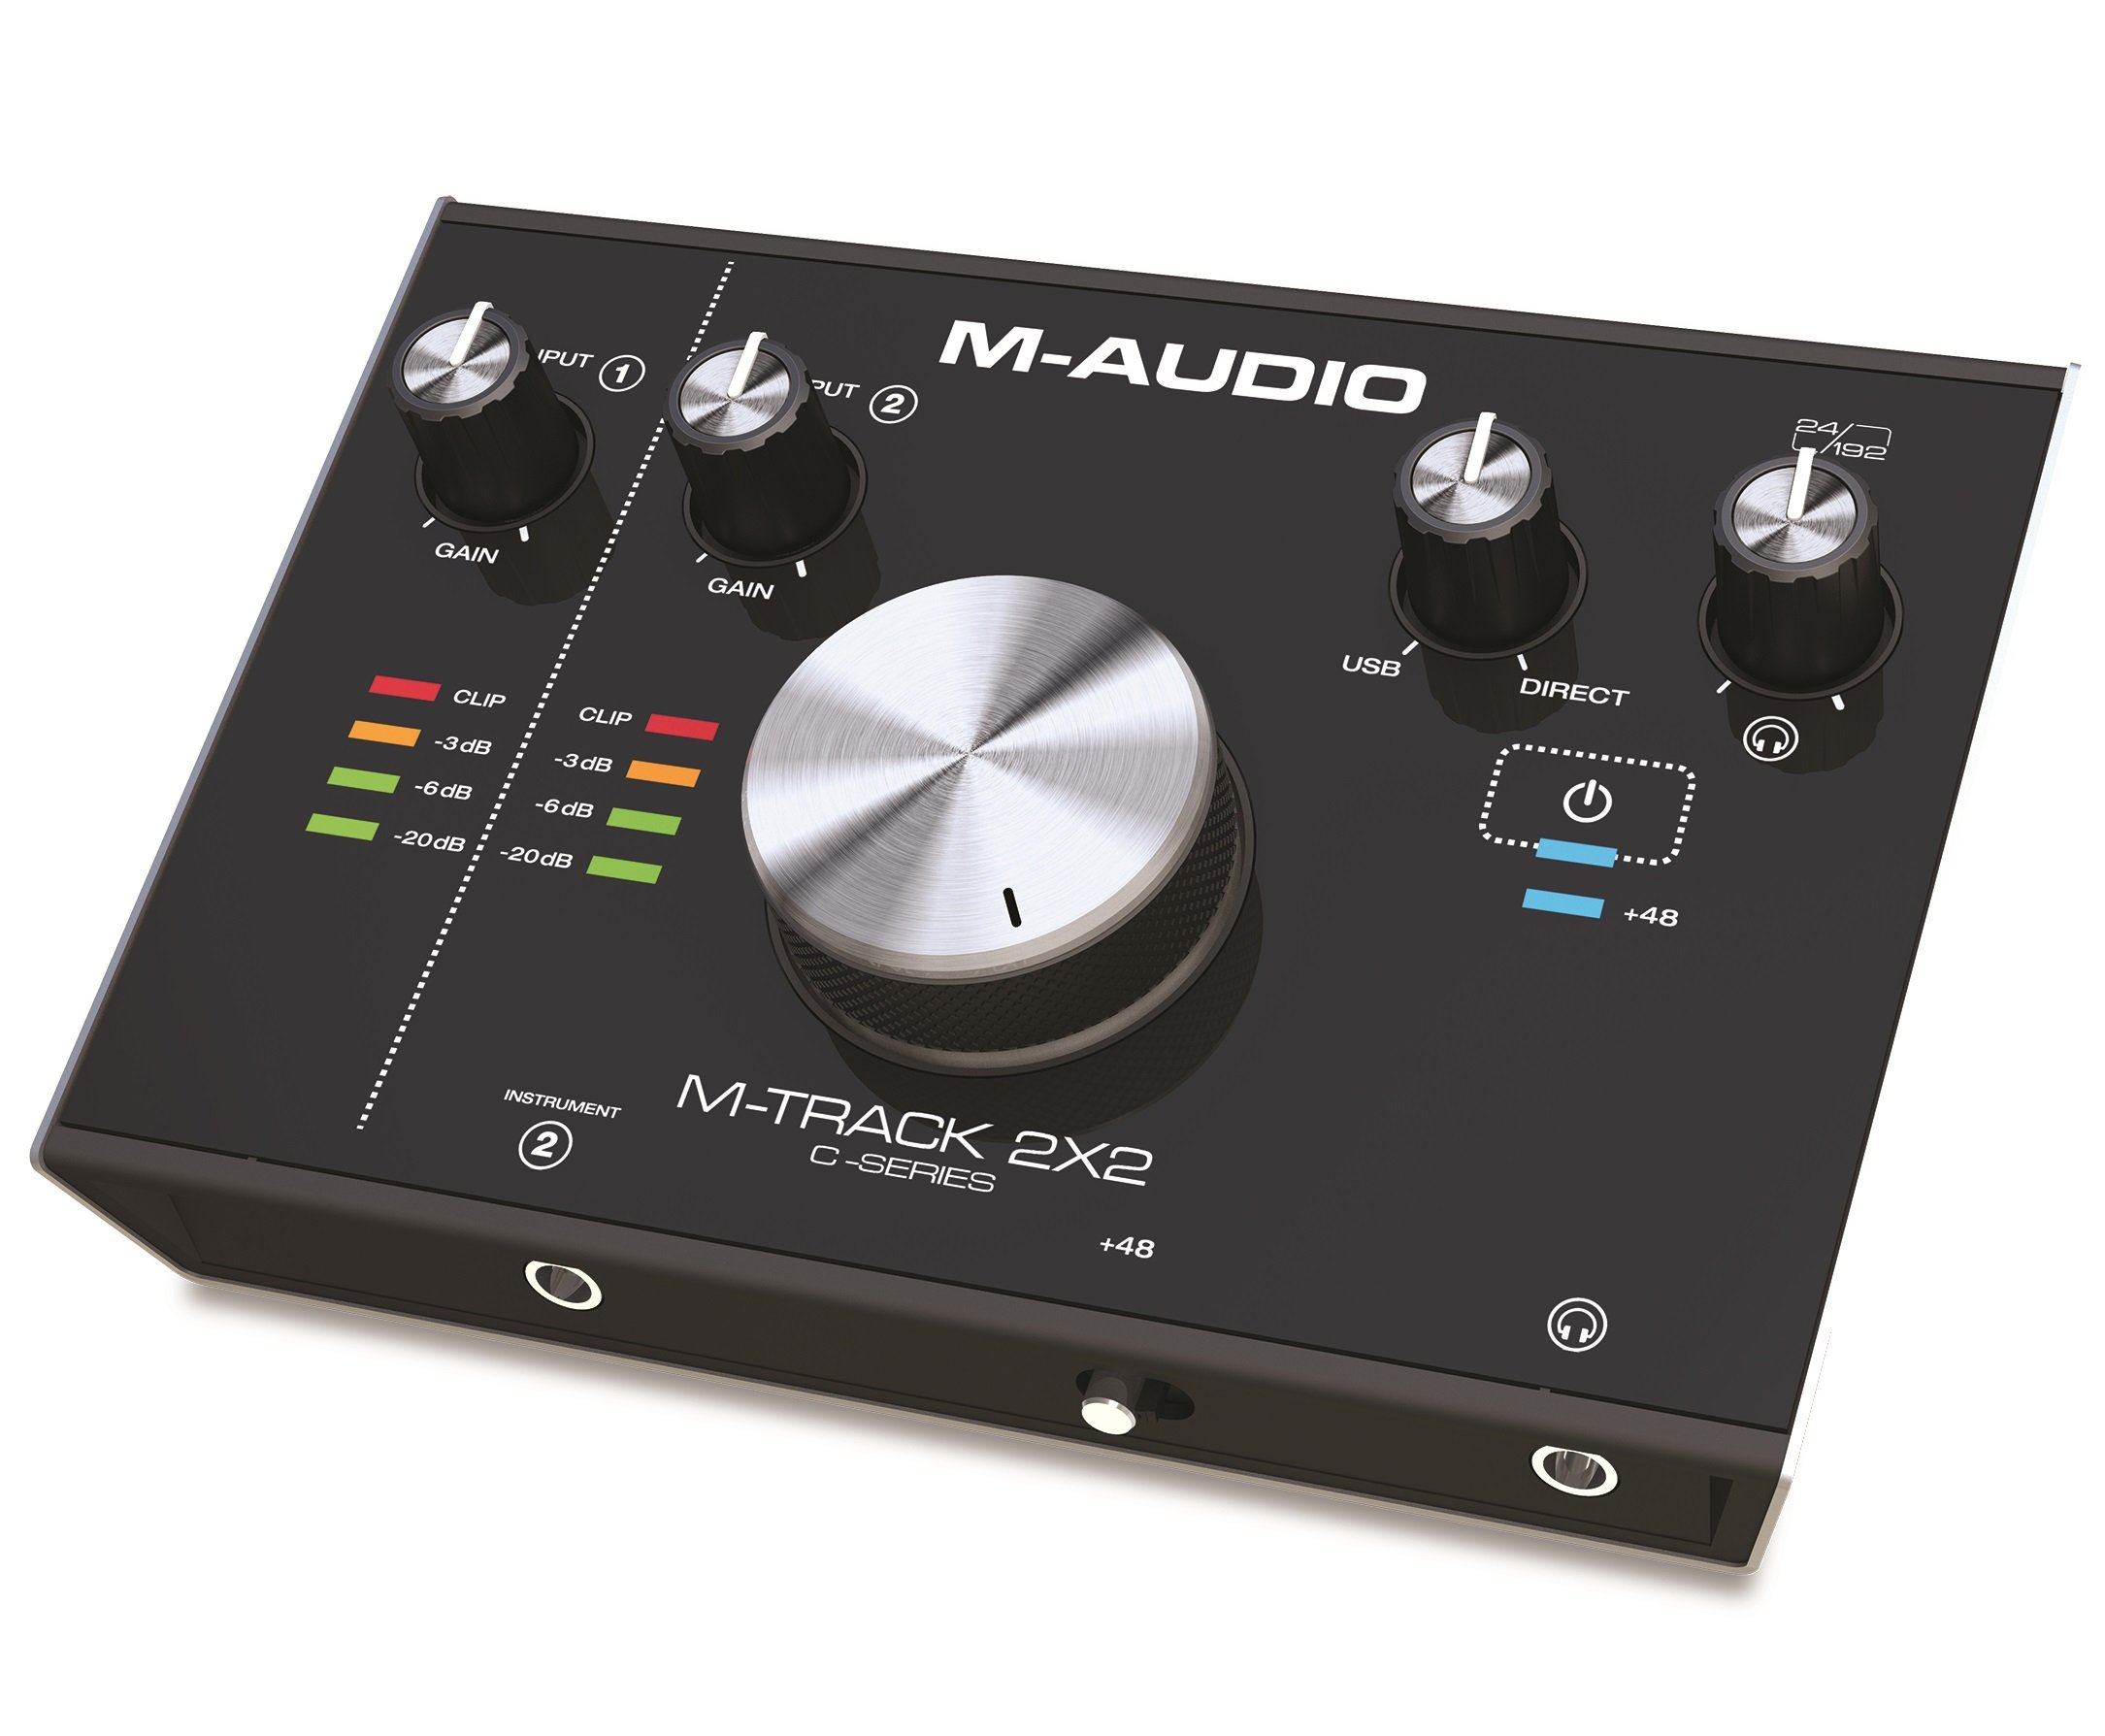 M-Audio M-Track 2X2 C-Series | 2-in/2-out USB Audio Interface (24-bit/192kHz) by M-Audio